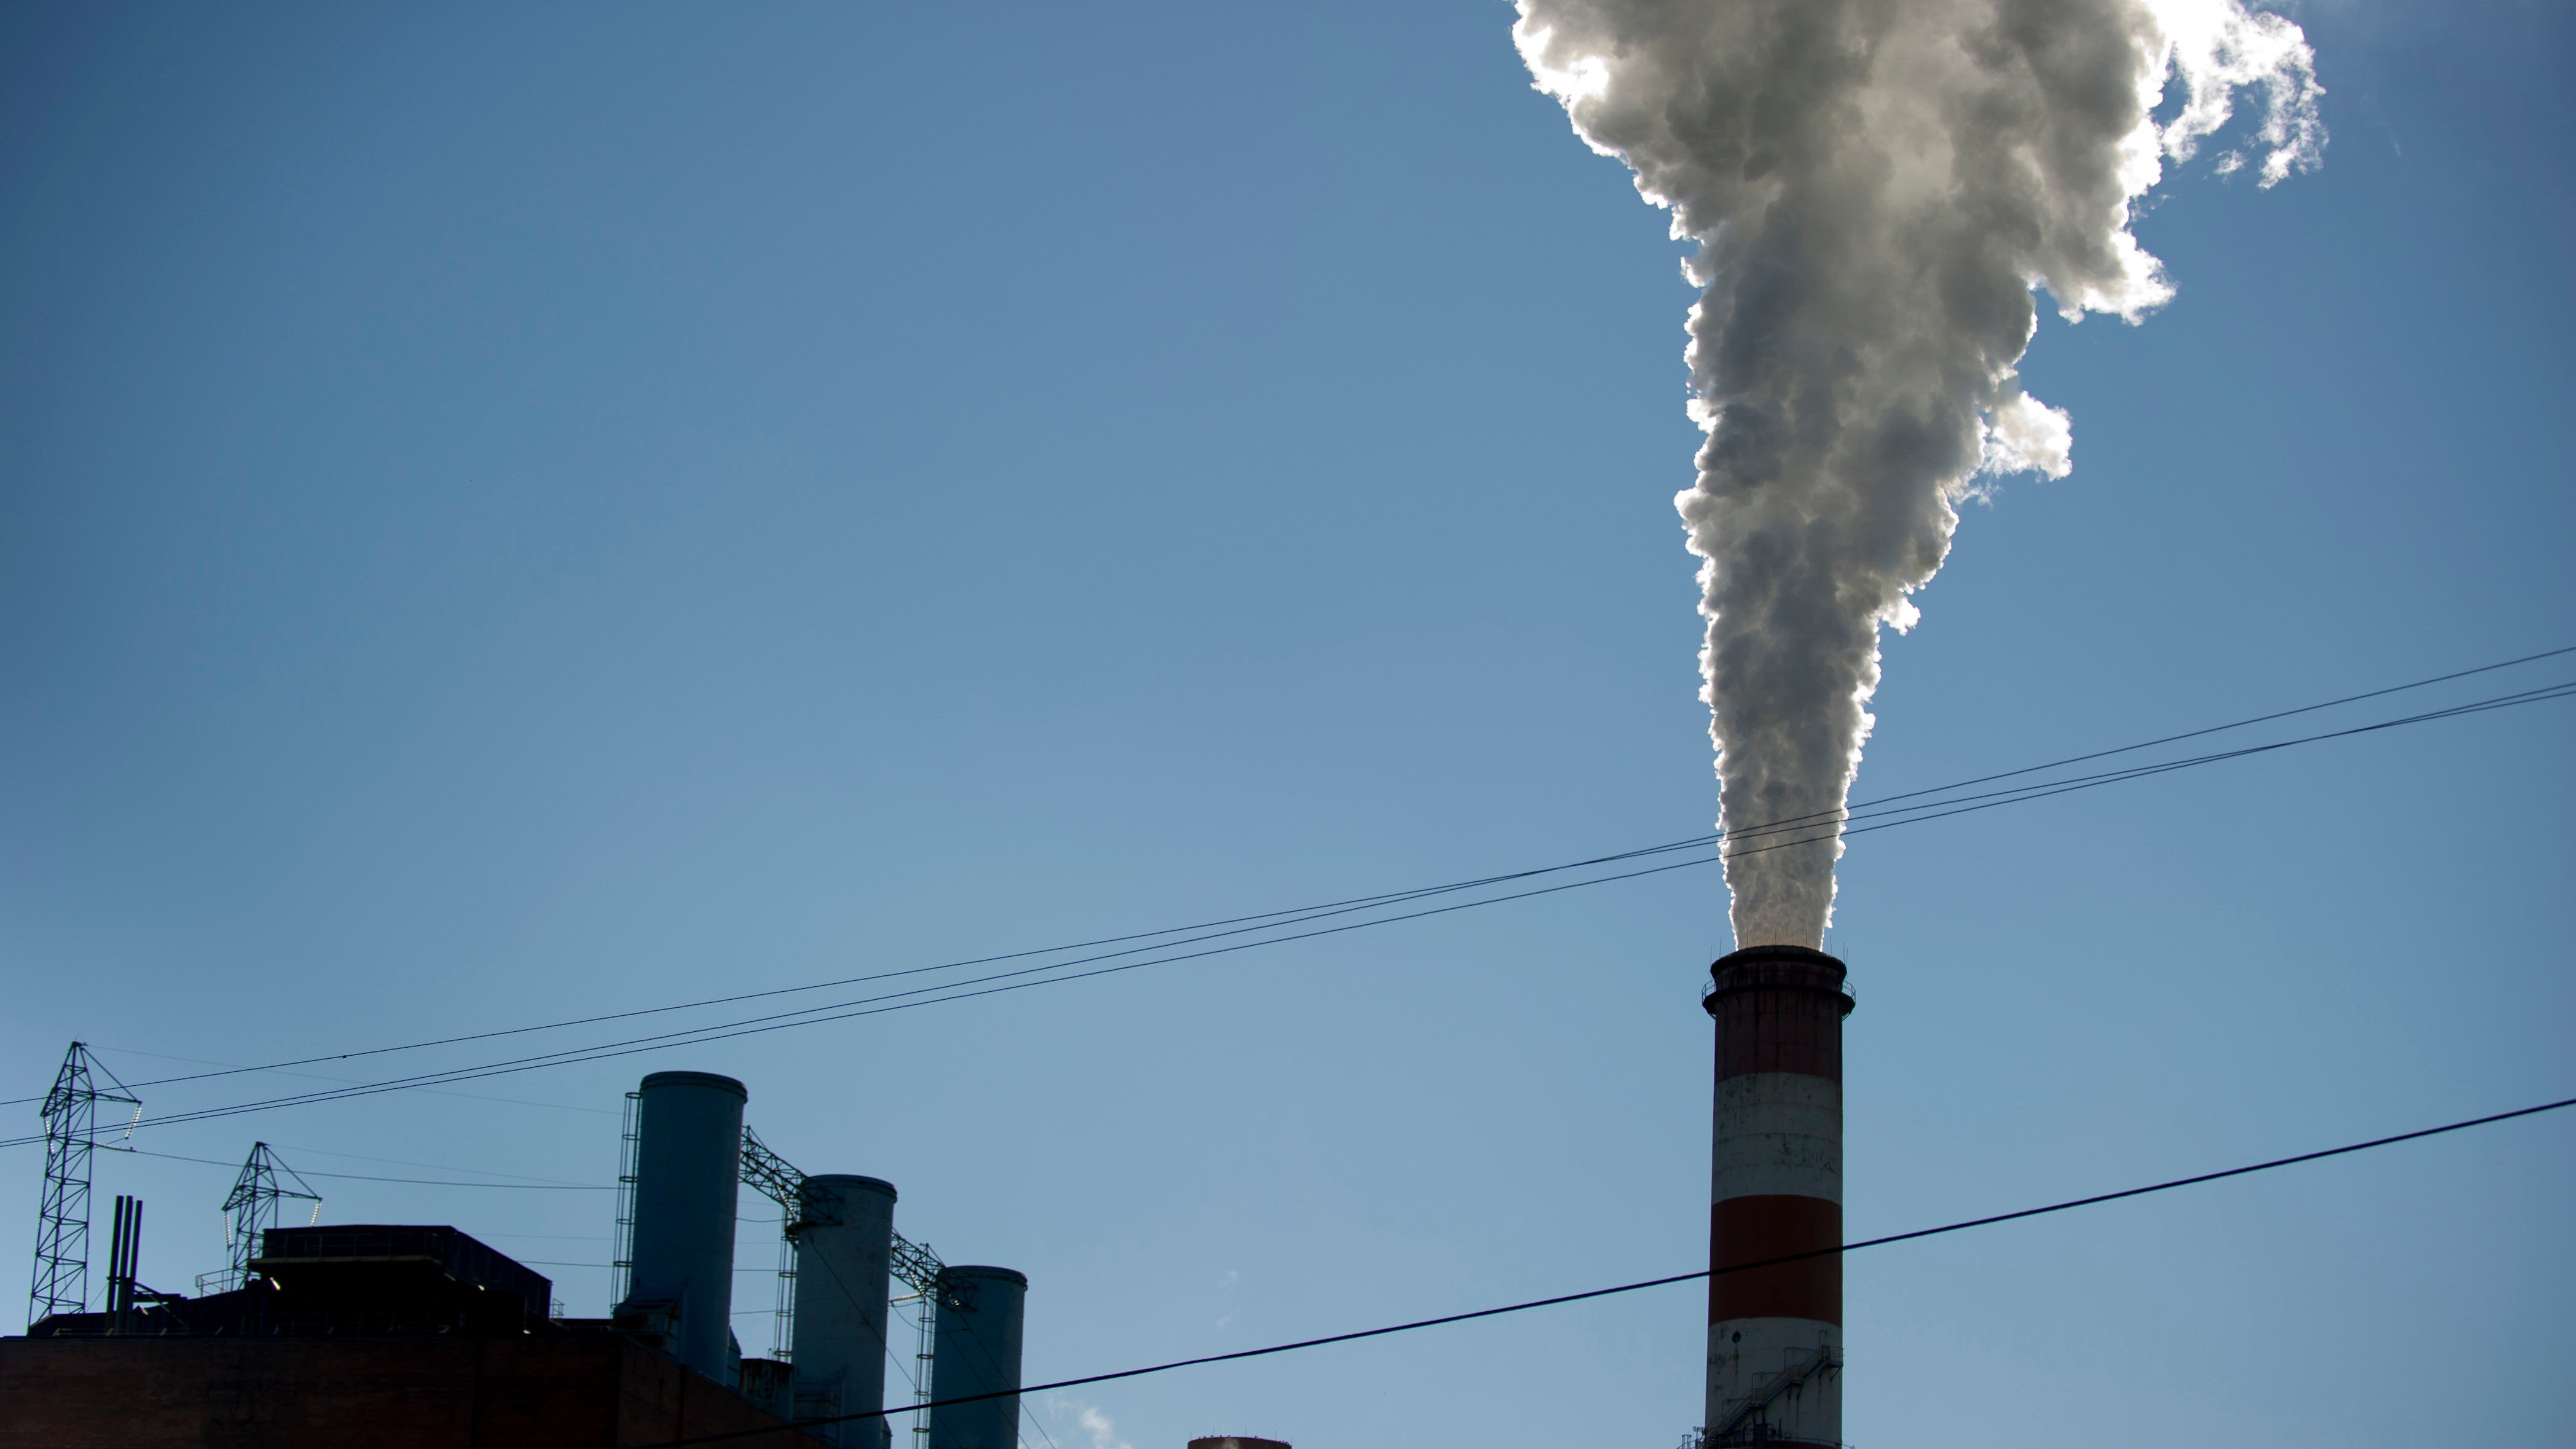 If You Live With Air Pollution, You're Already More Vulnerable To Covid-19